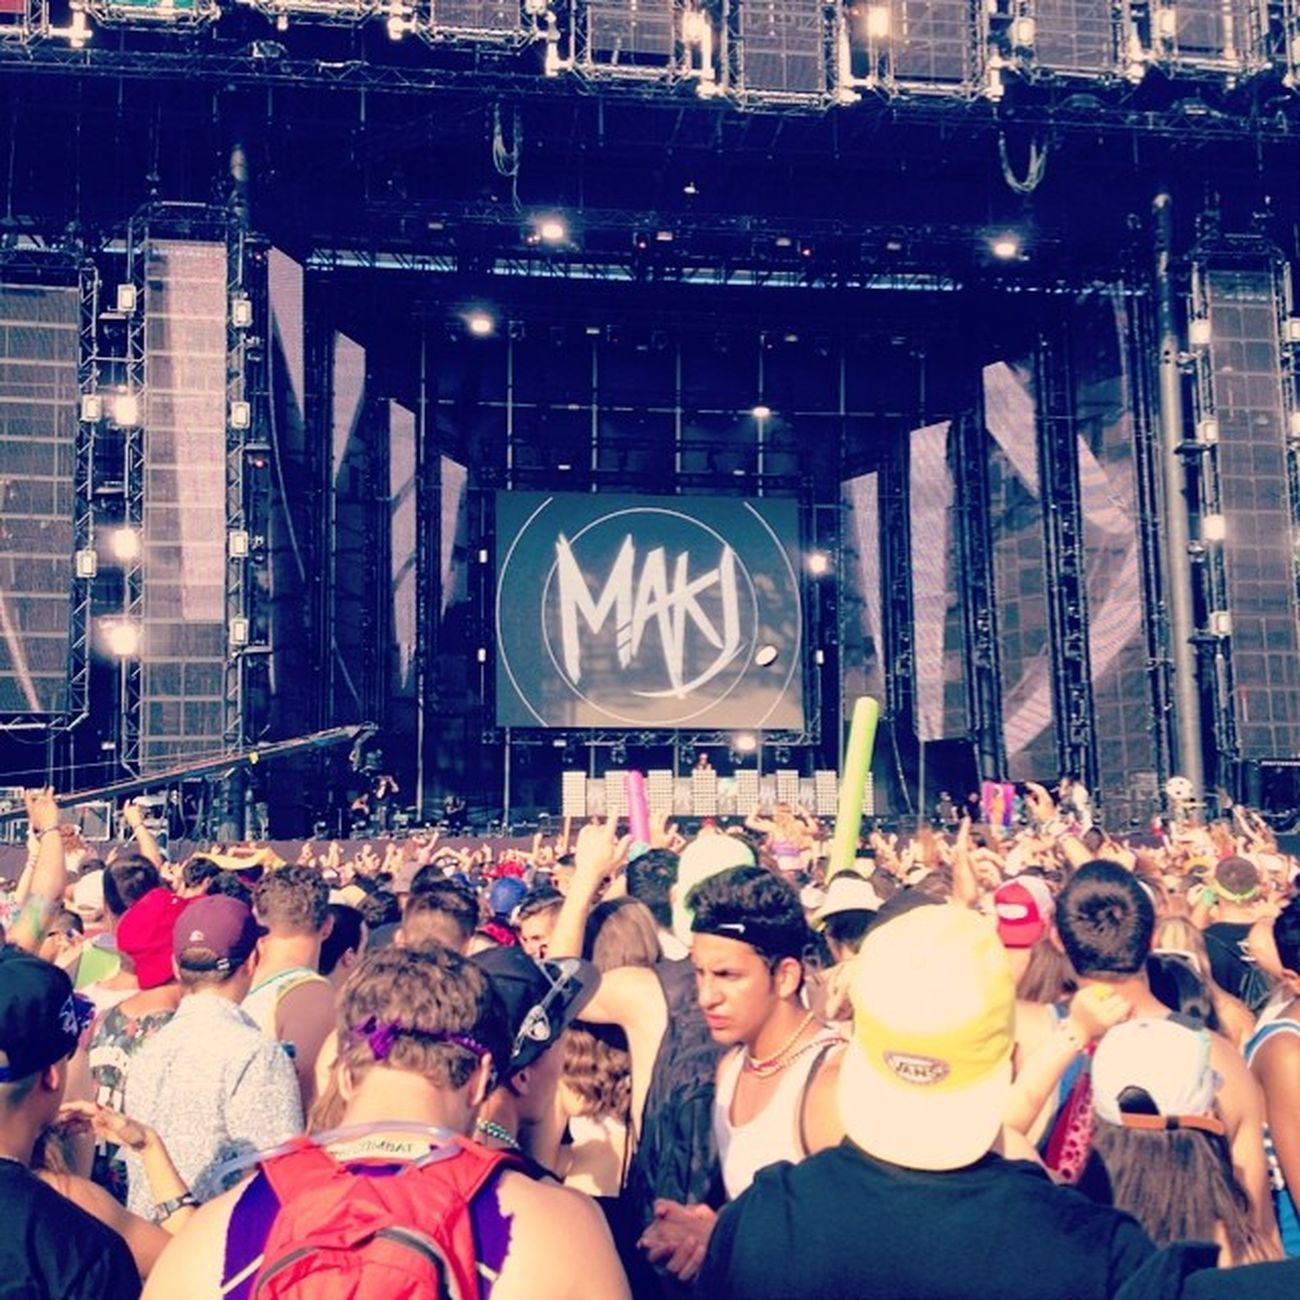 At Digitaldreams but can't help but remember seeing MAKJ with @matthewjmclellan 😘 miss ya bro